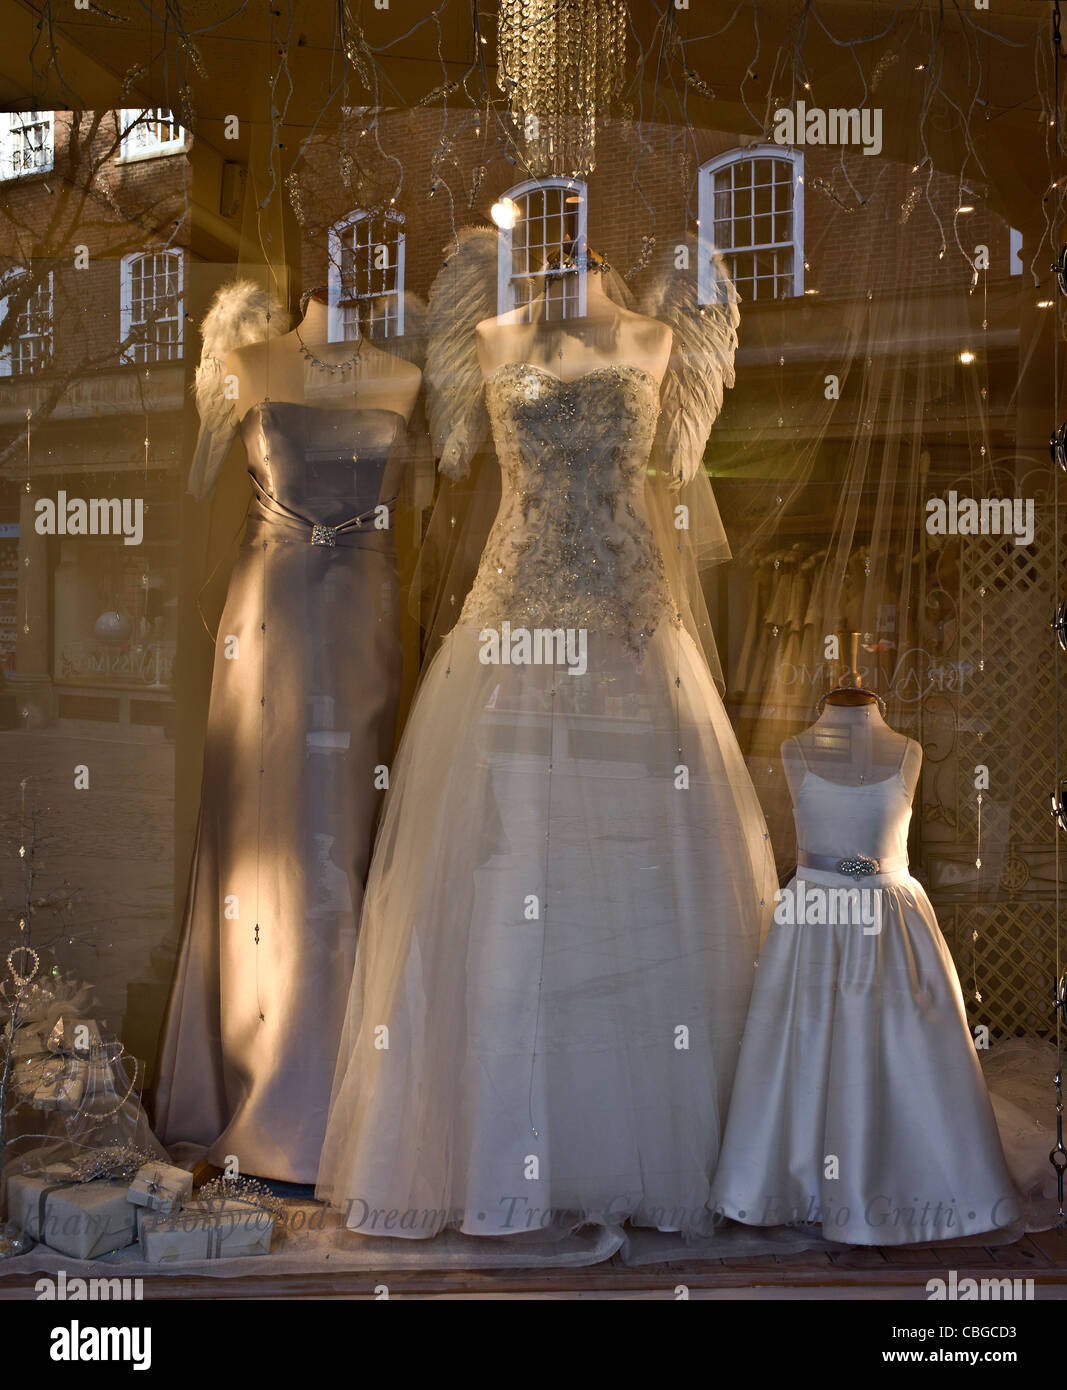 Wedding dress shop window with reflections Stock Photo